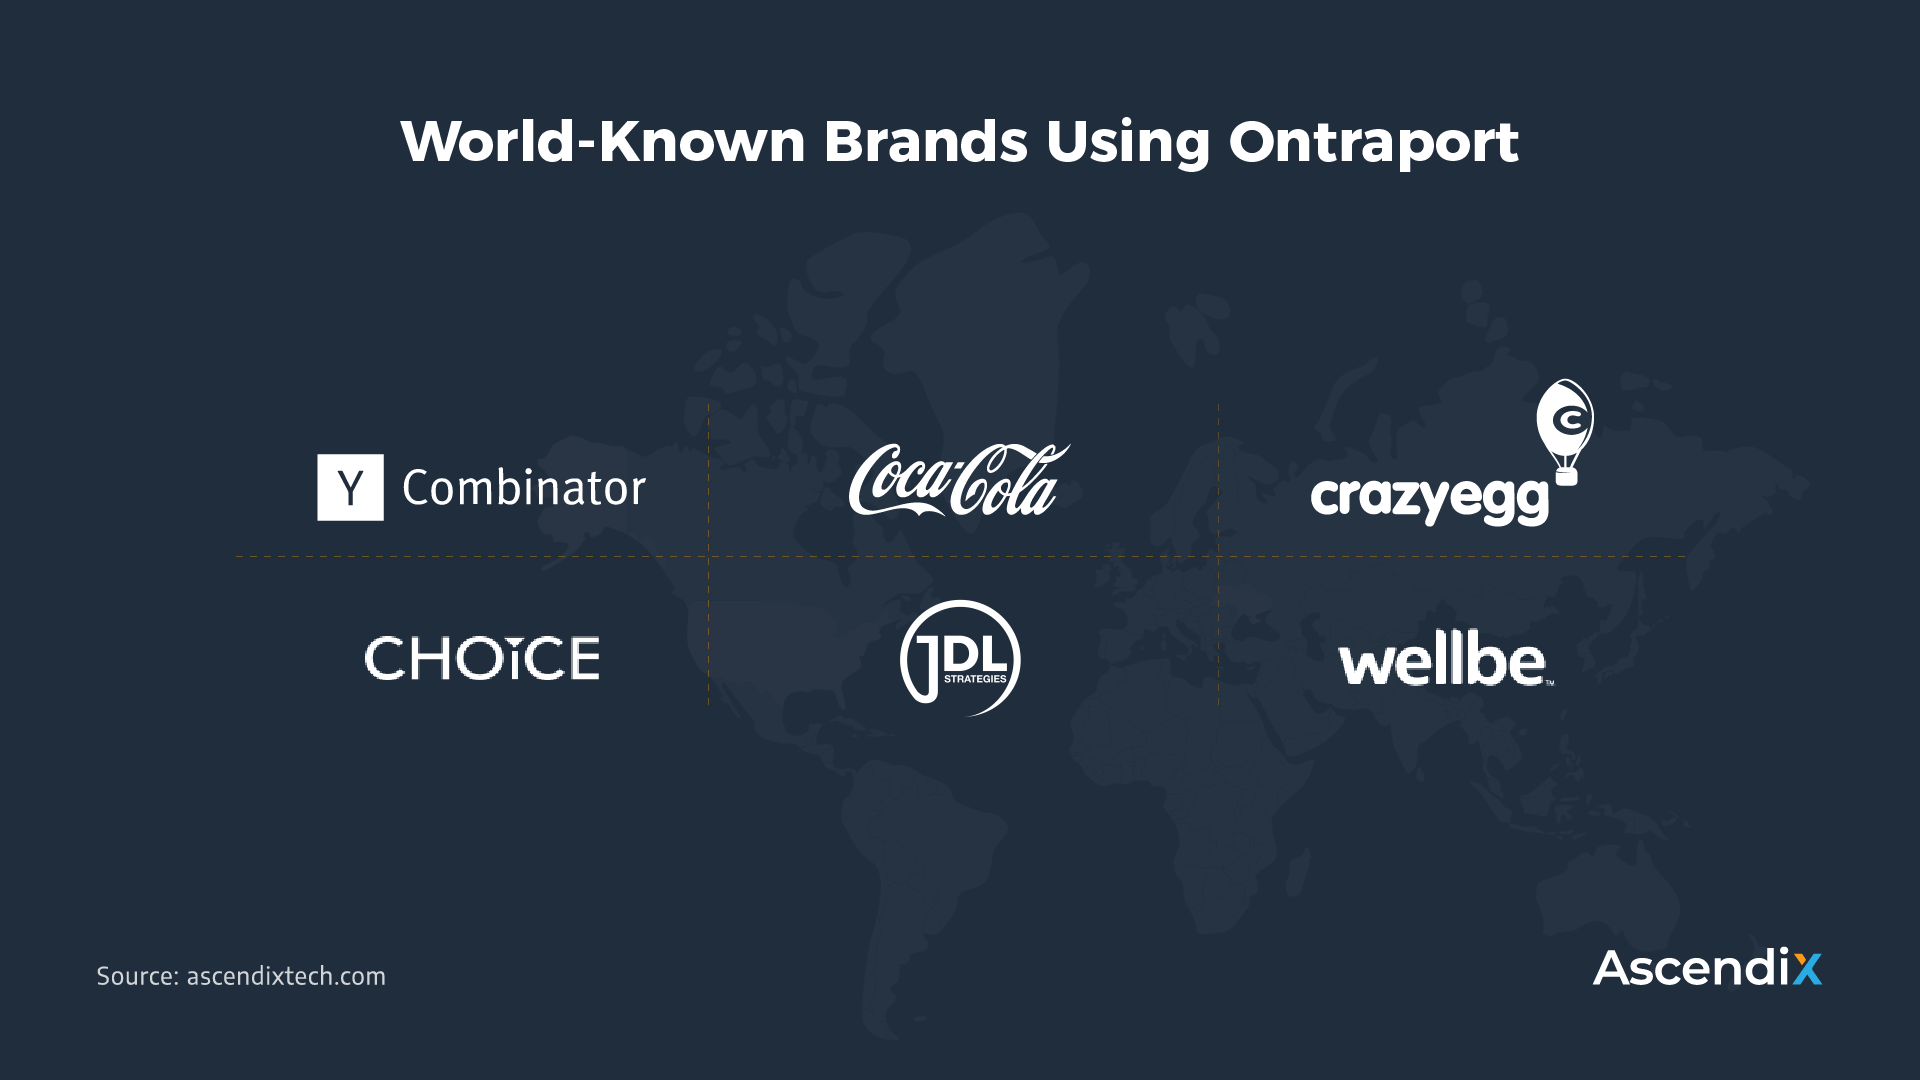 World-Known Brands Using Ontraport